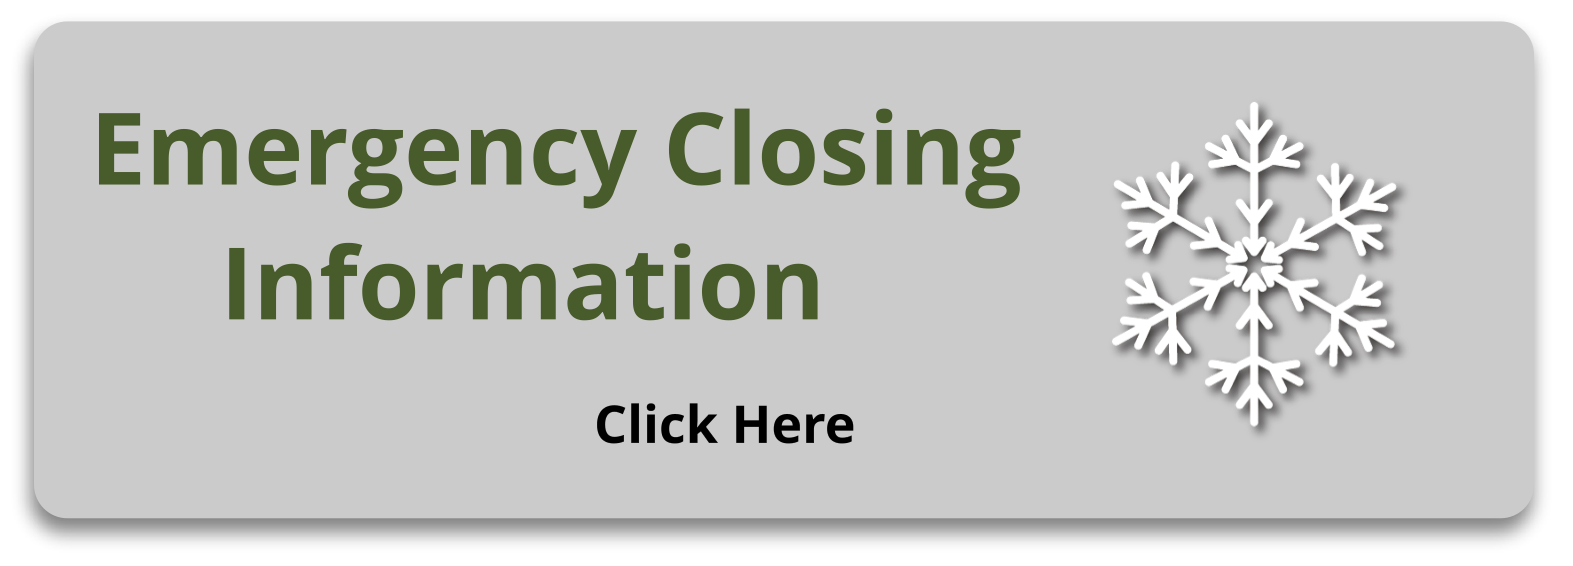 Emergency Closing Doc